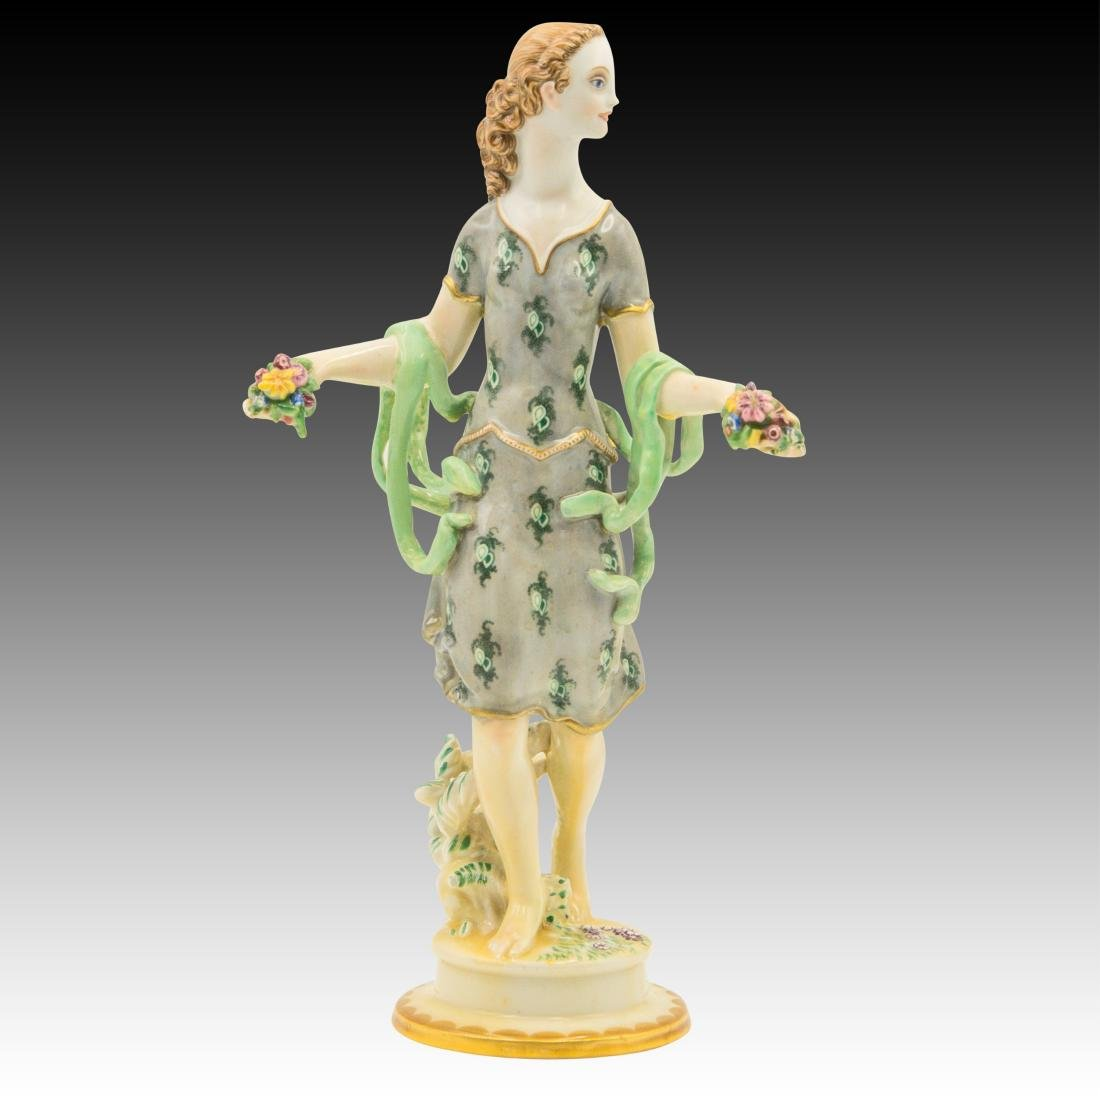 Wein Female with Flowers in her Hands Figurine